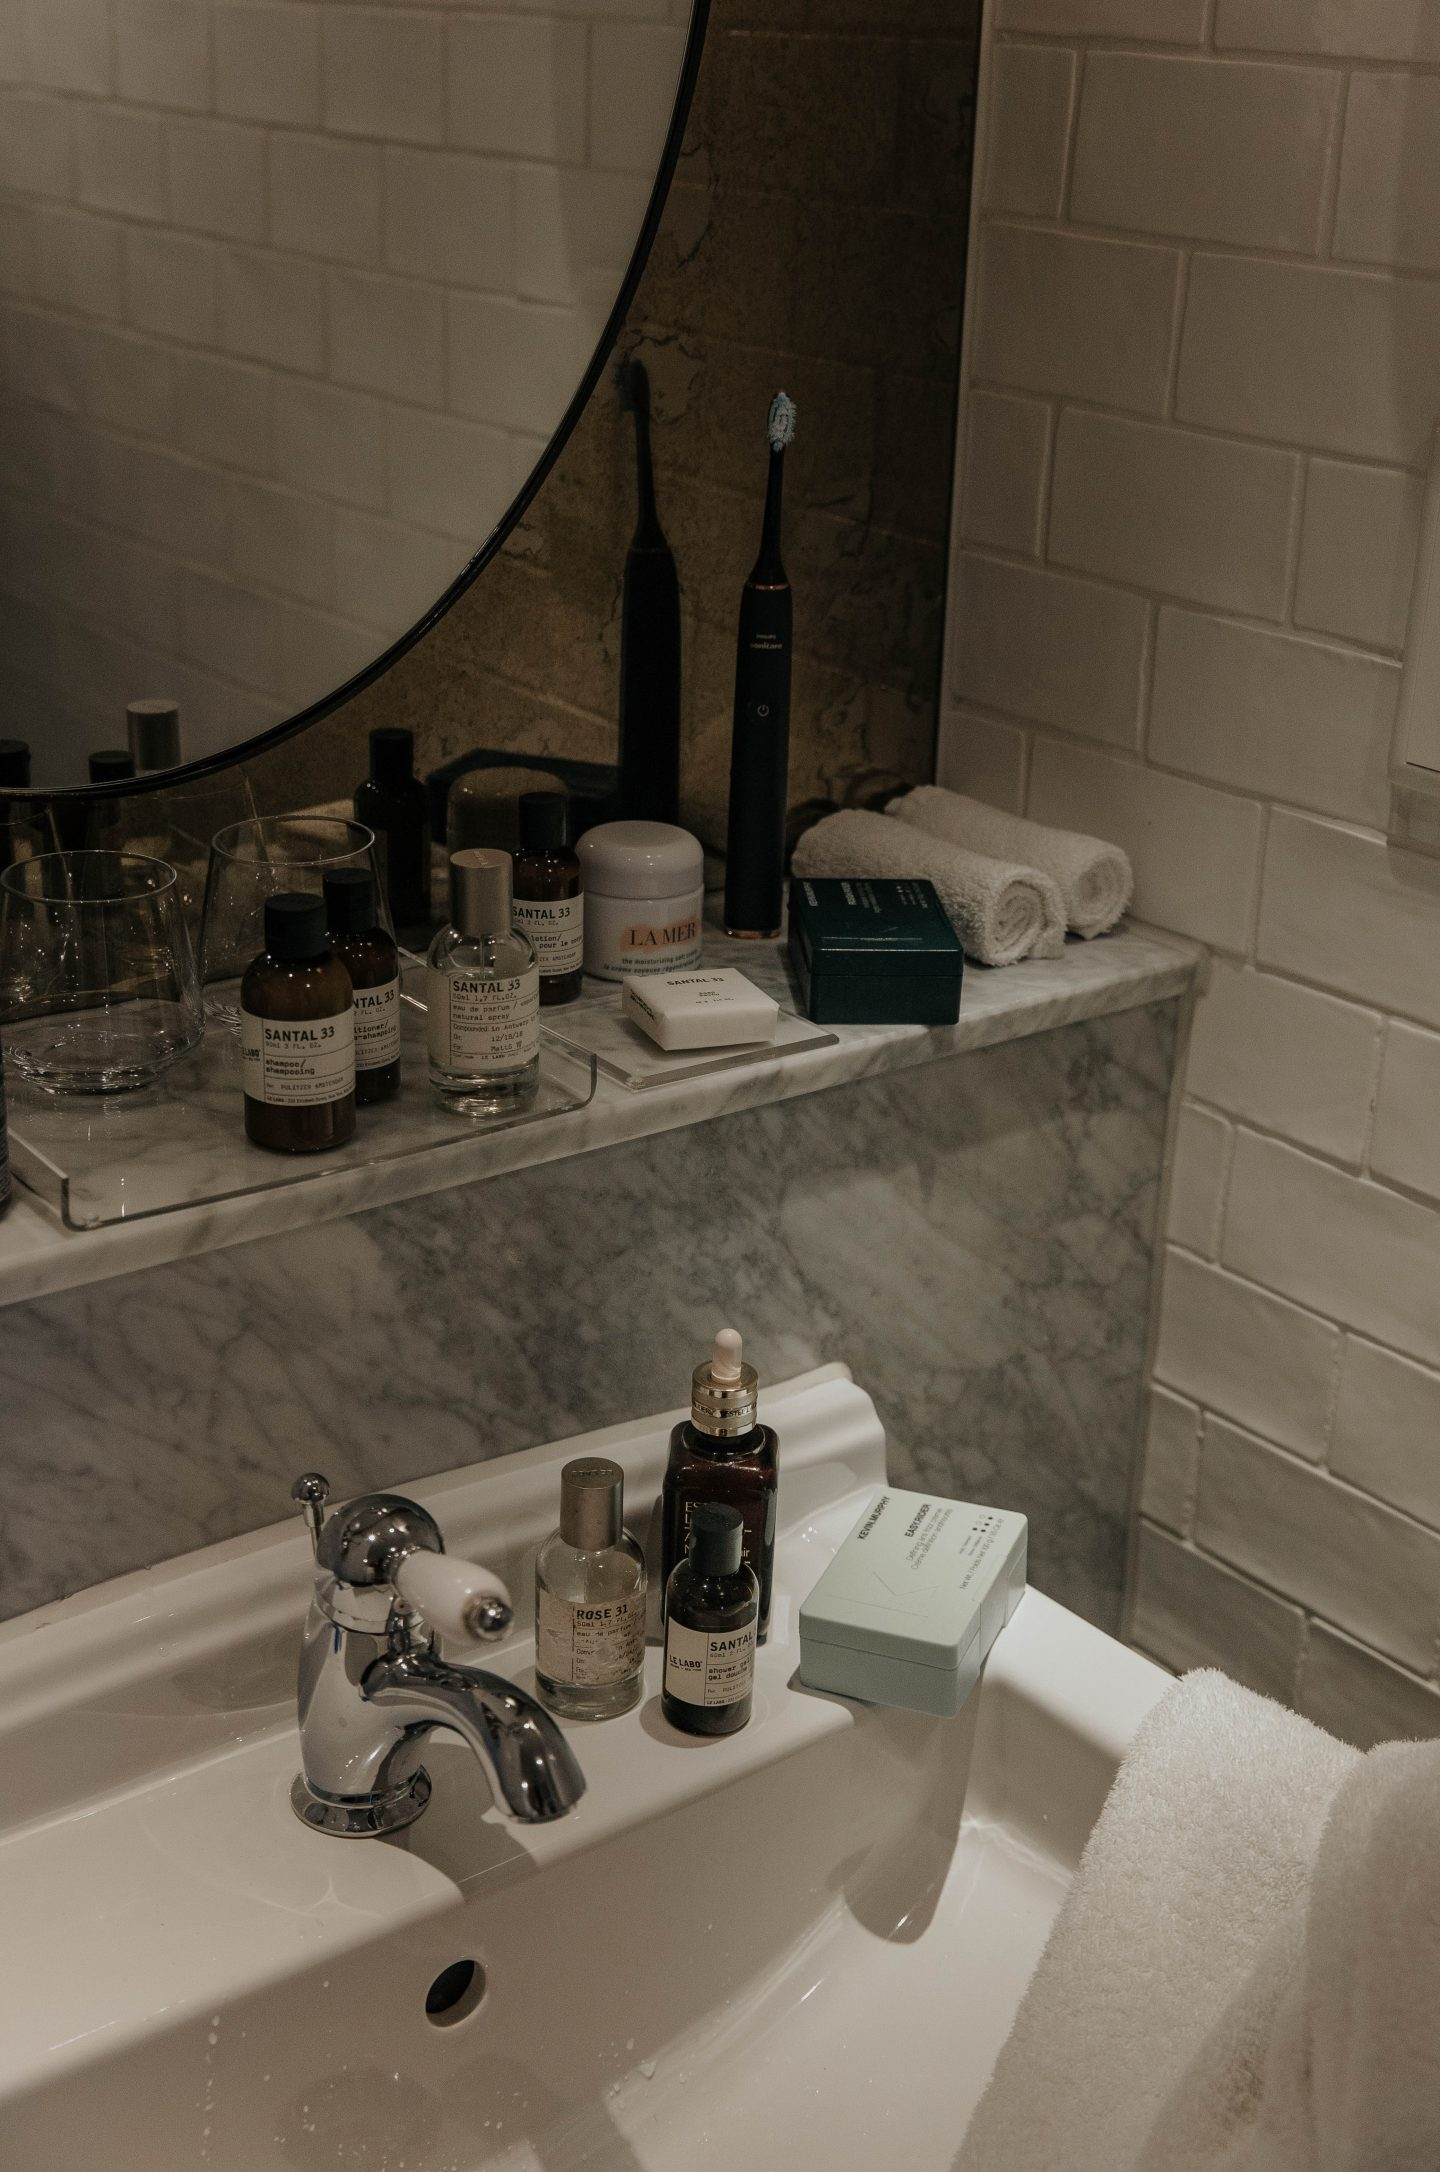 Where to stay in Amsterdam? The Pulitzer Hotel